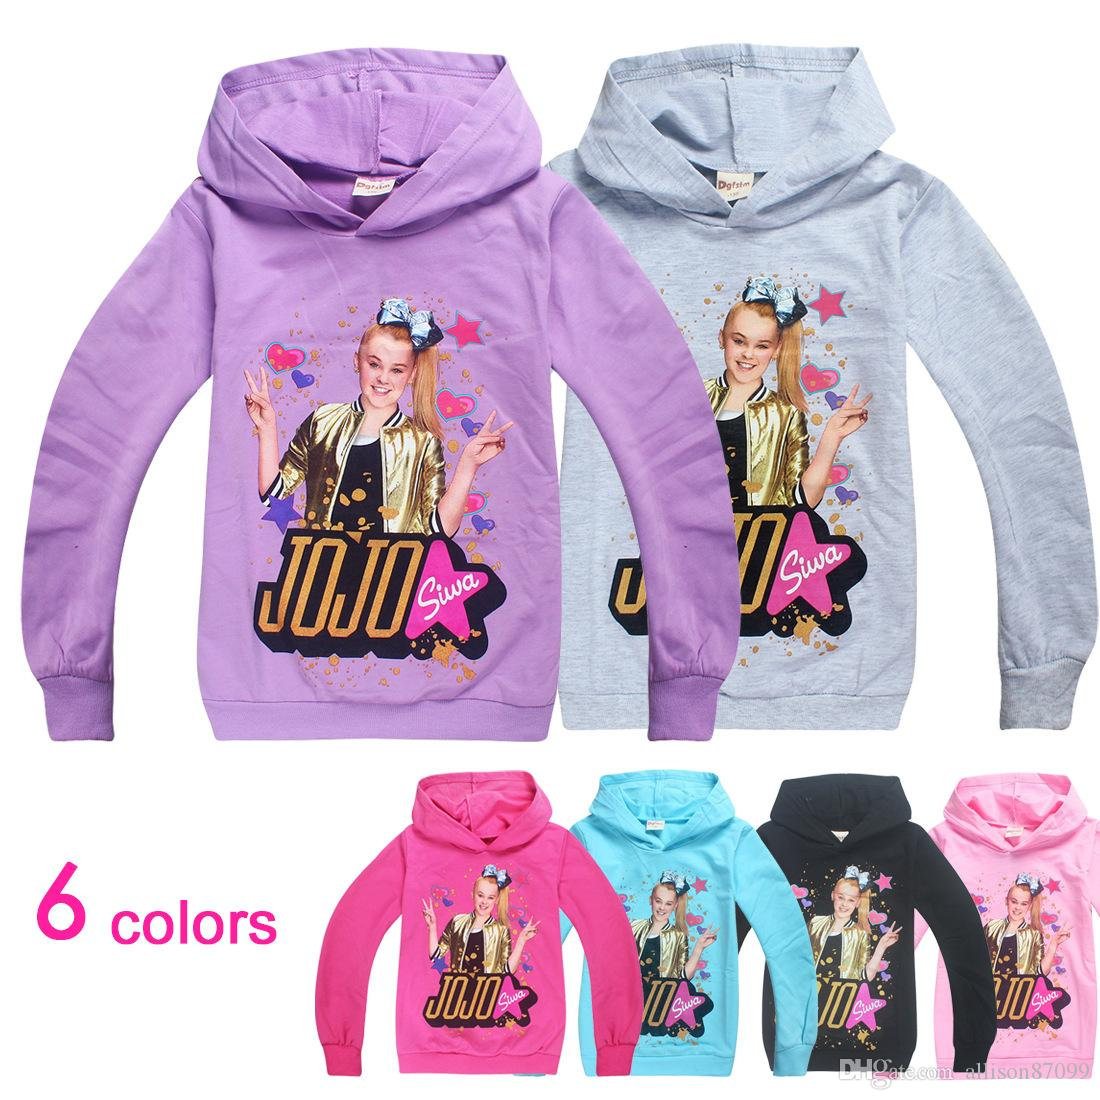 JOJO Siwa Hoodies Pullover Chidren clothing 6 Colors Printed Junior's Hooded Coat Terry Cotton Spring Autumn 2019 Free DHL